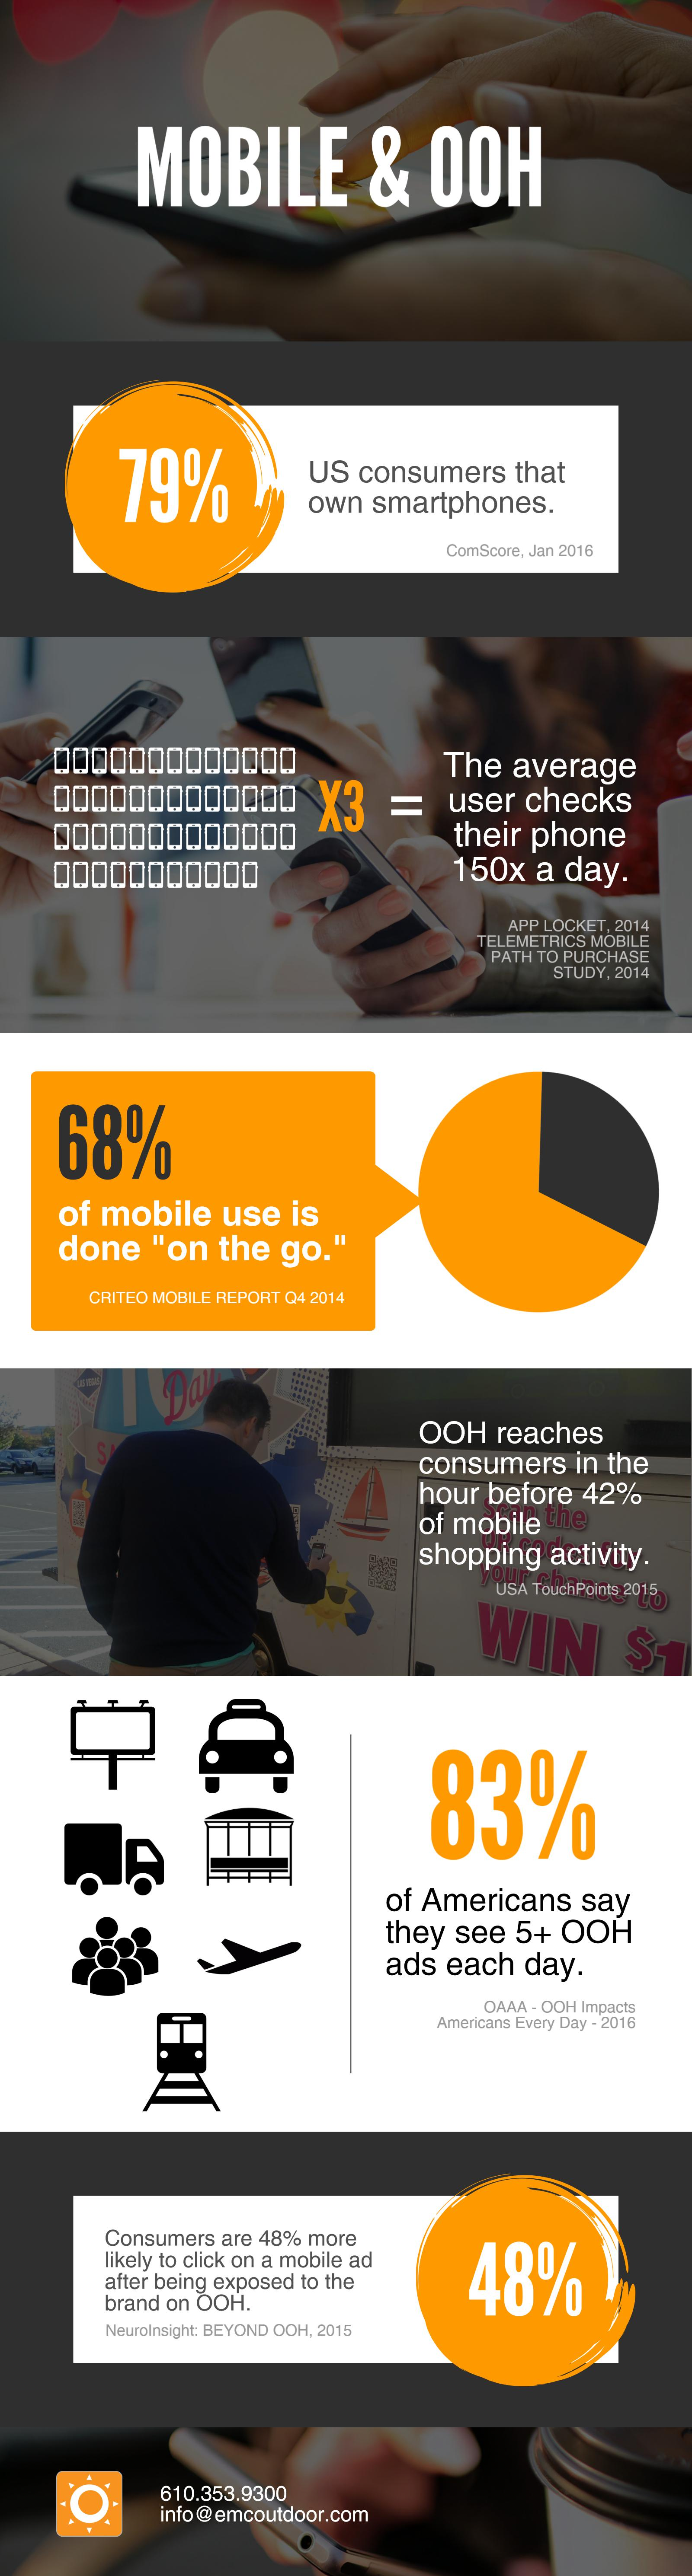 Mobile&OOH